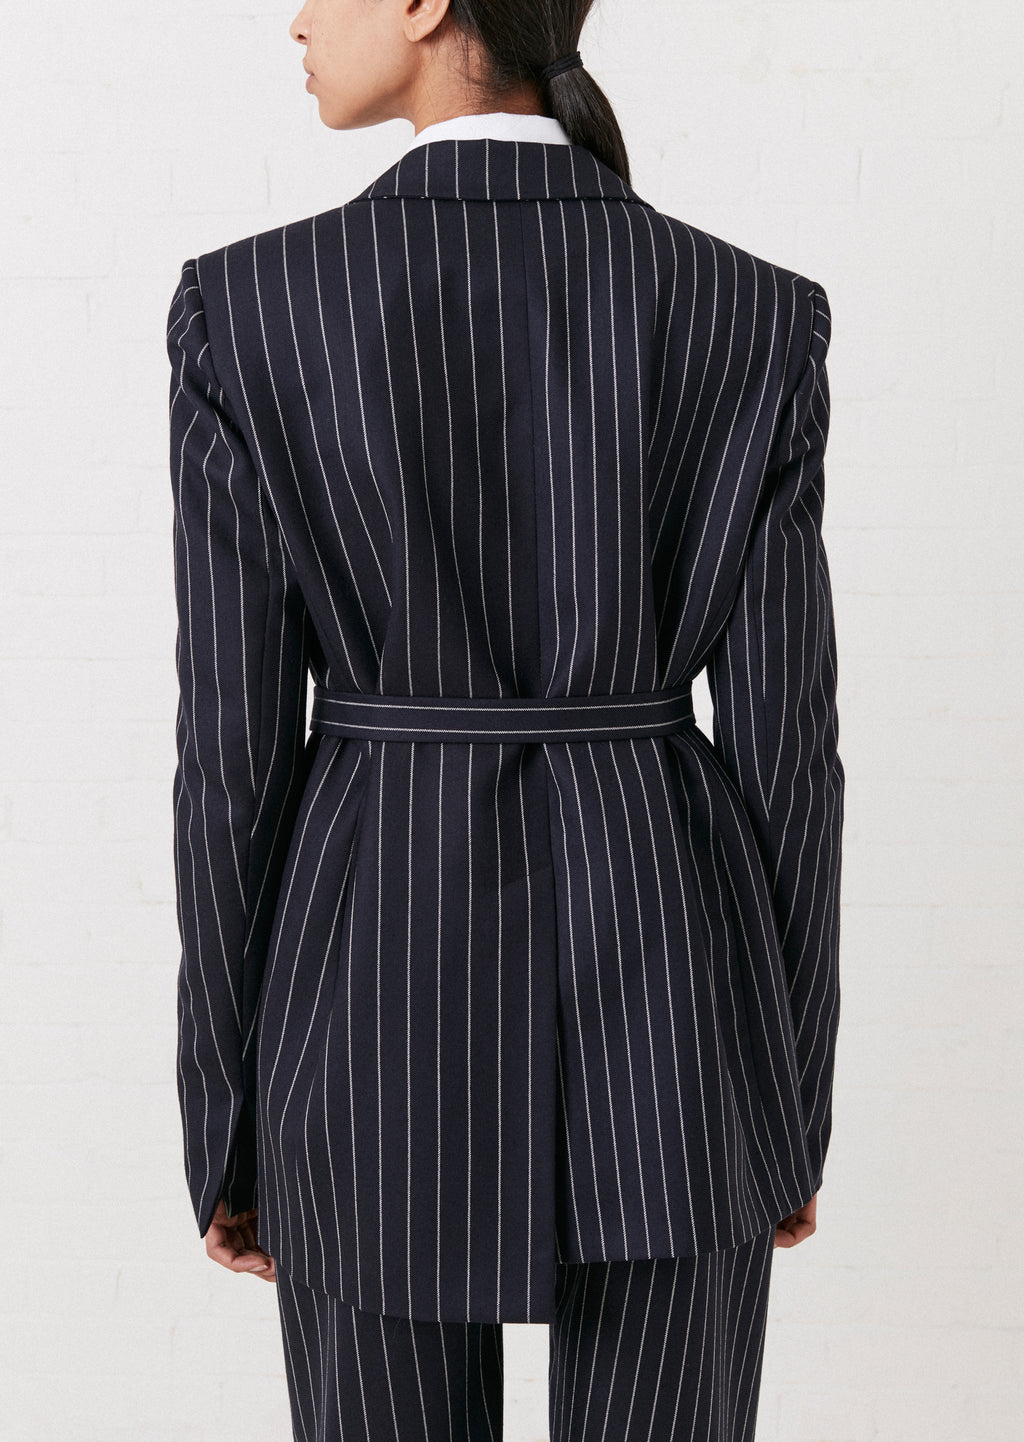 Pinstripe Tailored Wool Jacket by House of Holland